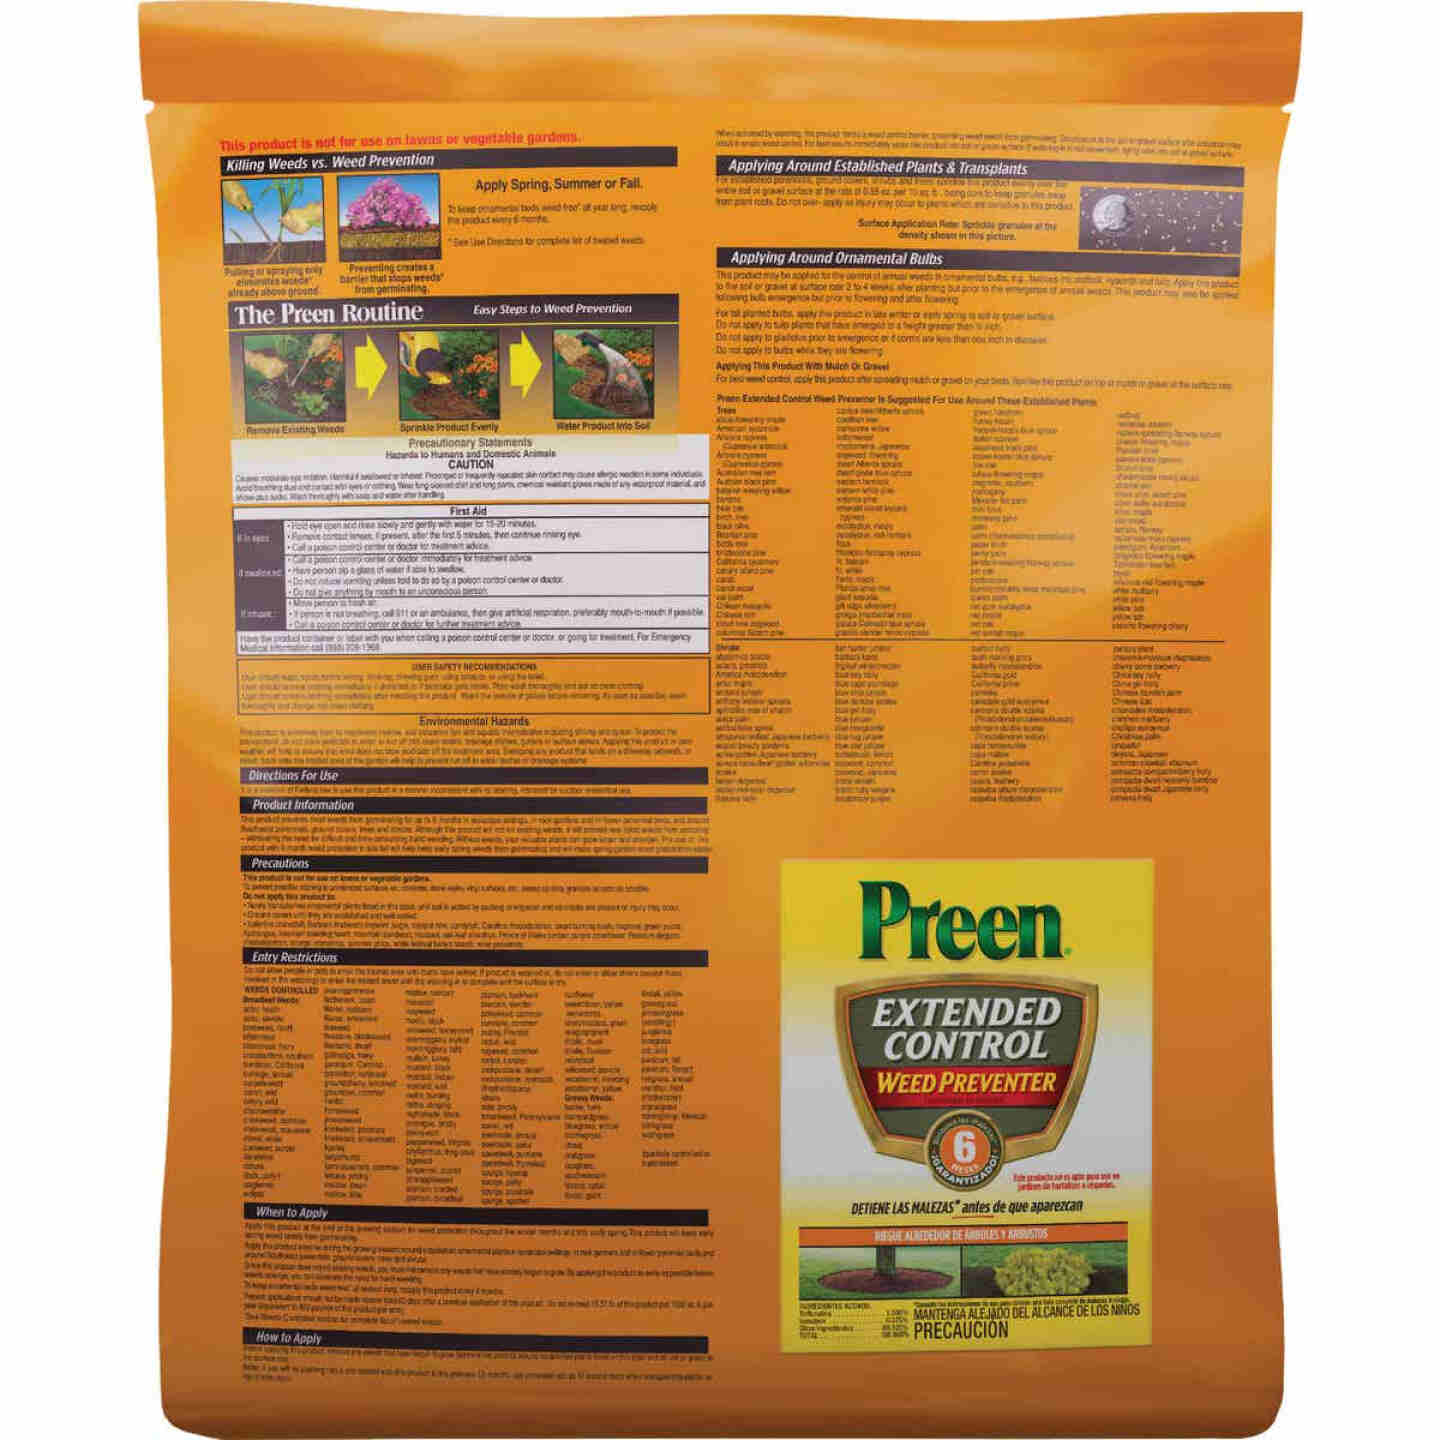 Preen Extended Control Weed Preventer, 10 Lb. Image 2